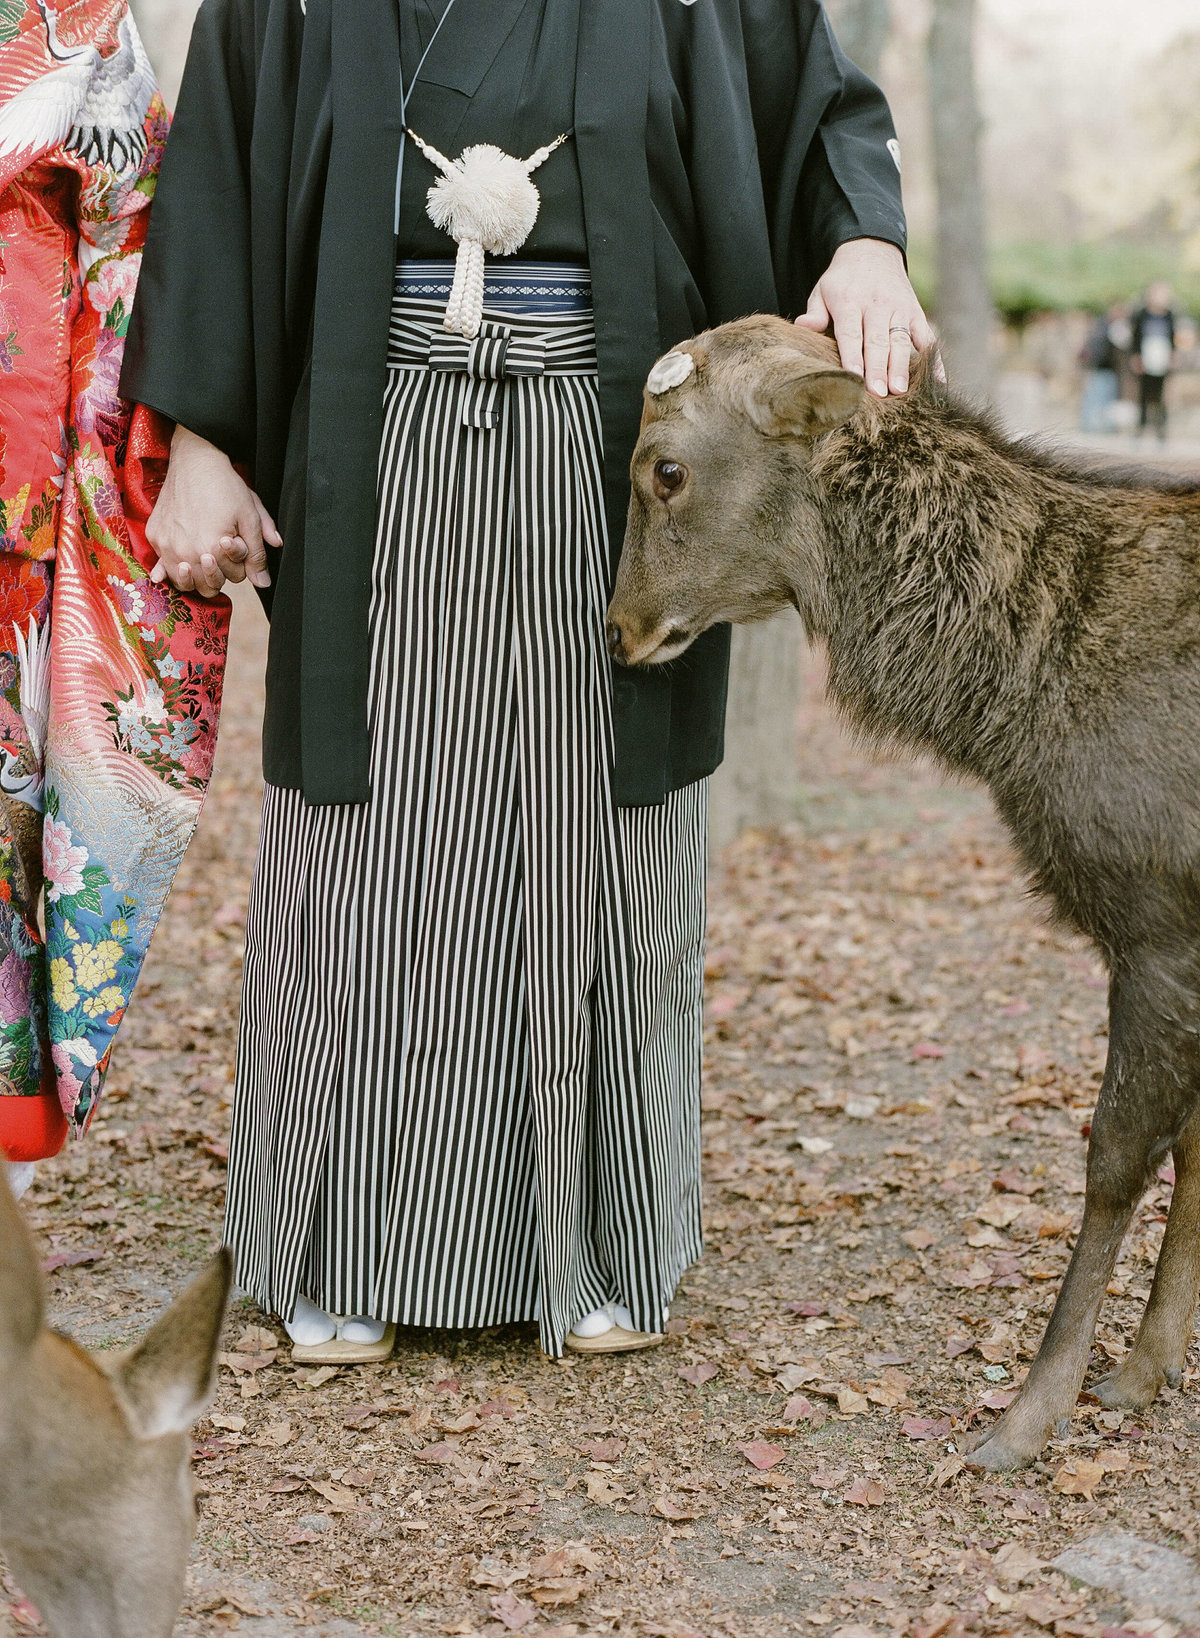 19-KTMerry-weddings-japan-deer